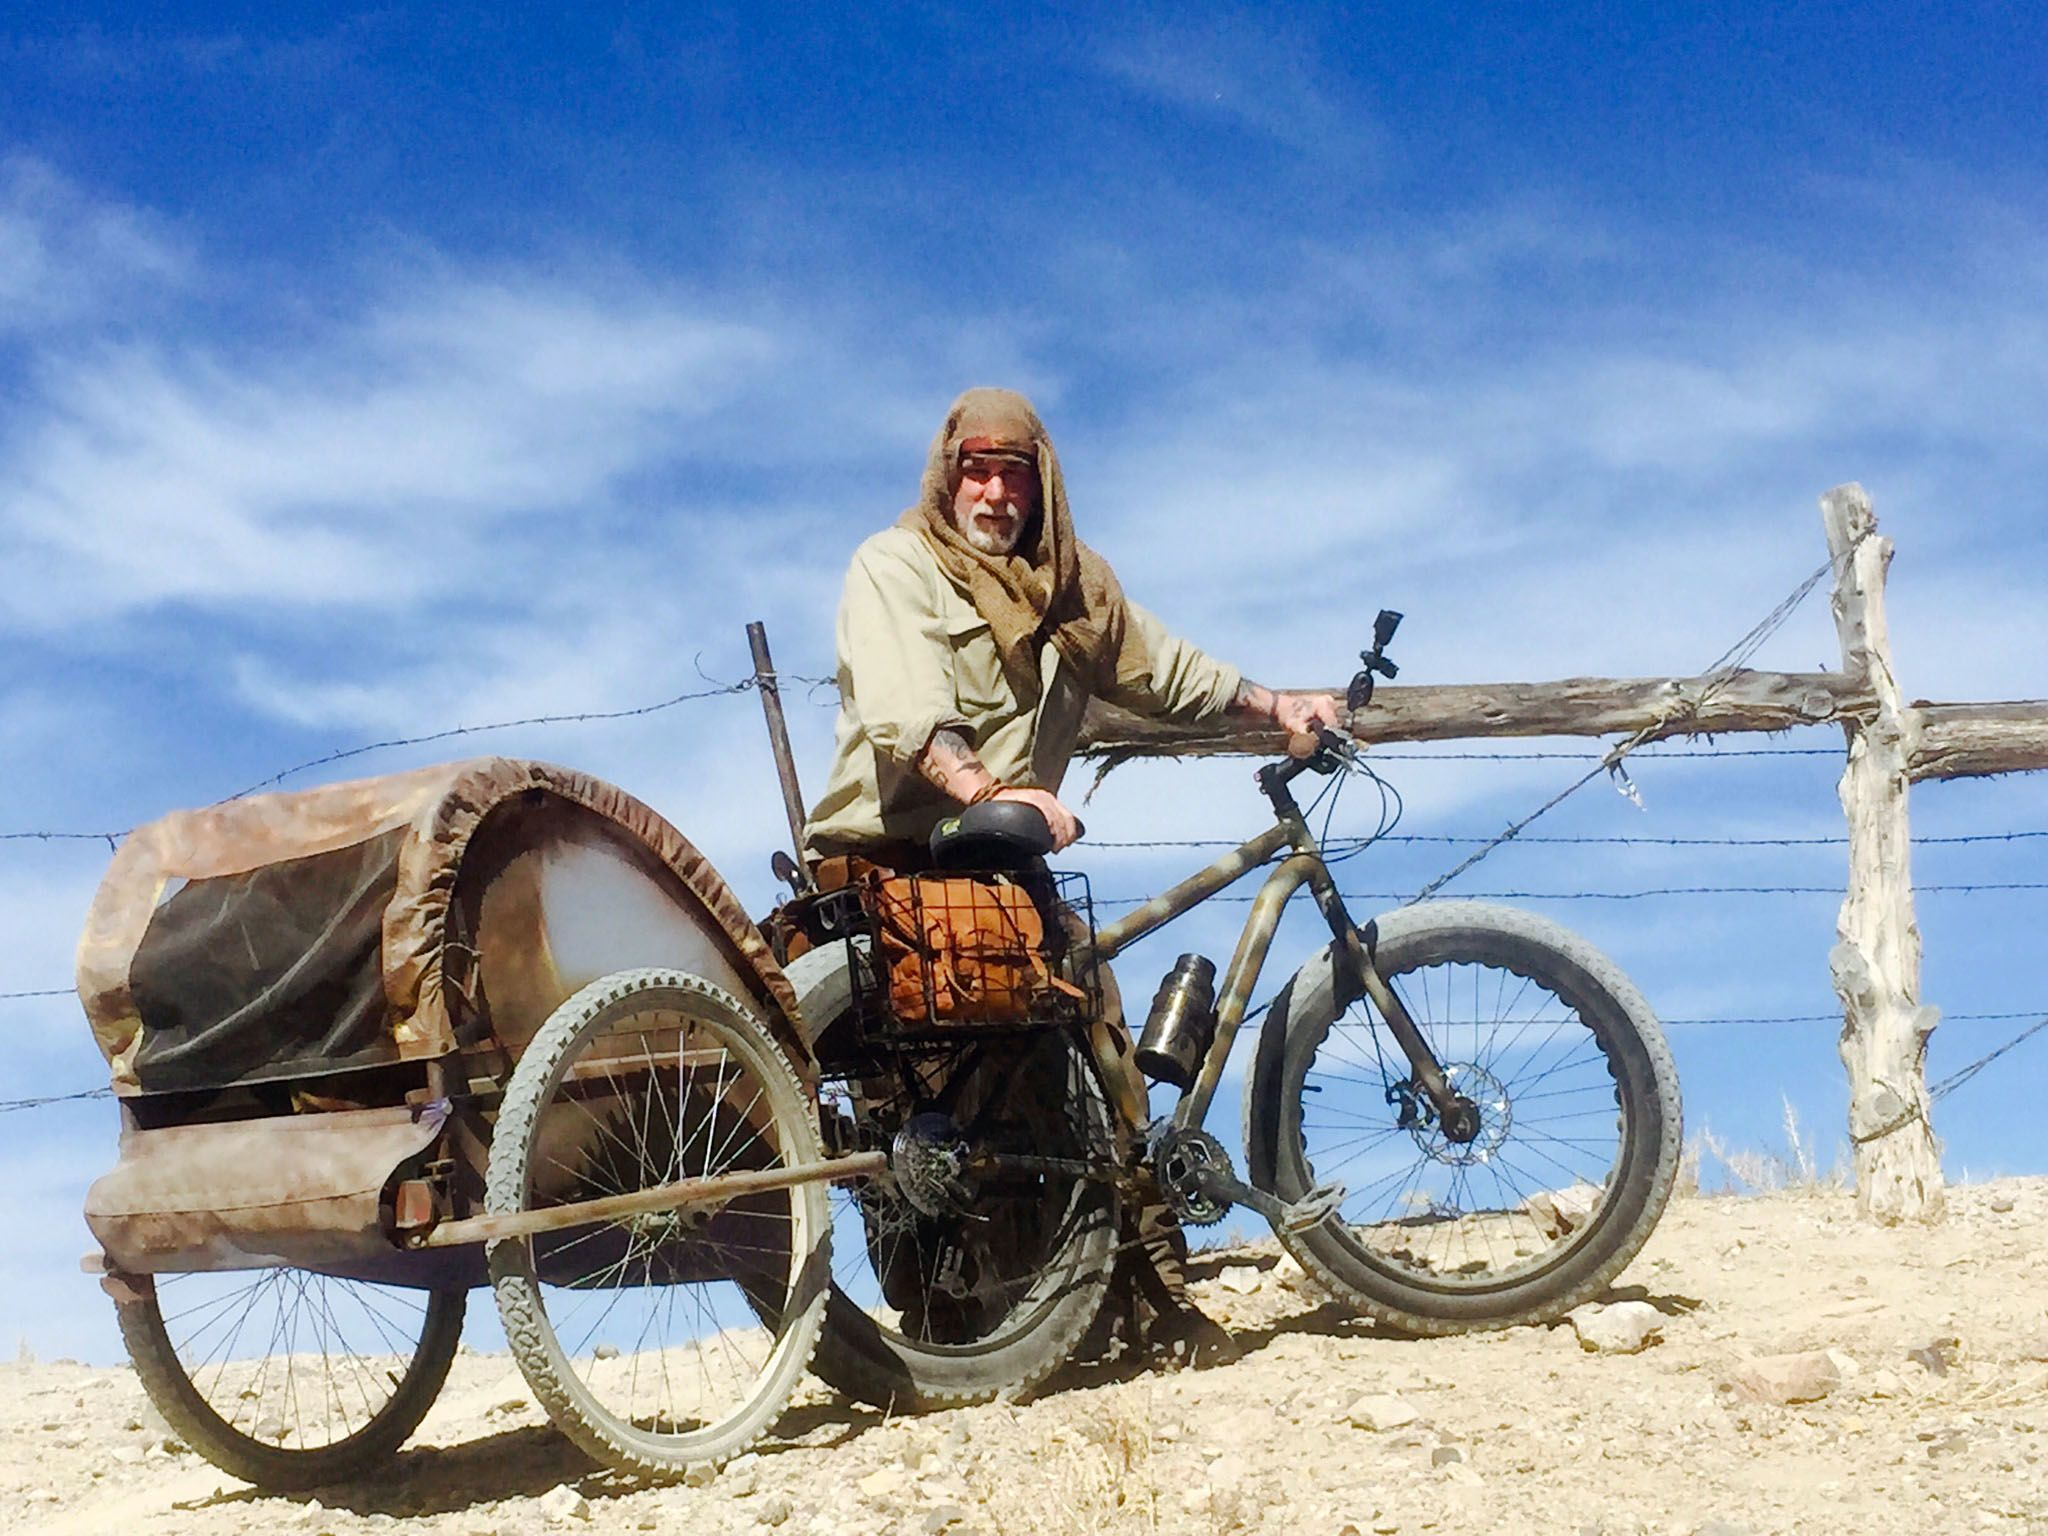 Fallon, Nev.: Survivalist, Dave Canterbury and his bike. This image is from Dirty Rotten Survival. [Foto del día - diciembre 2015]